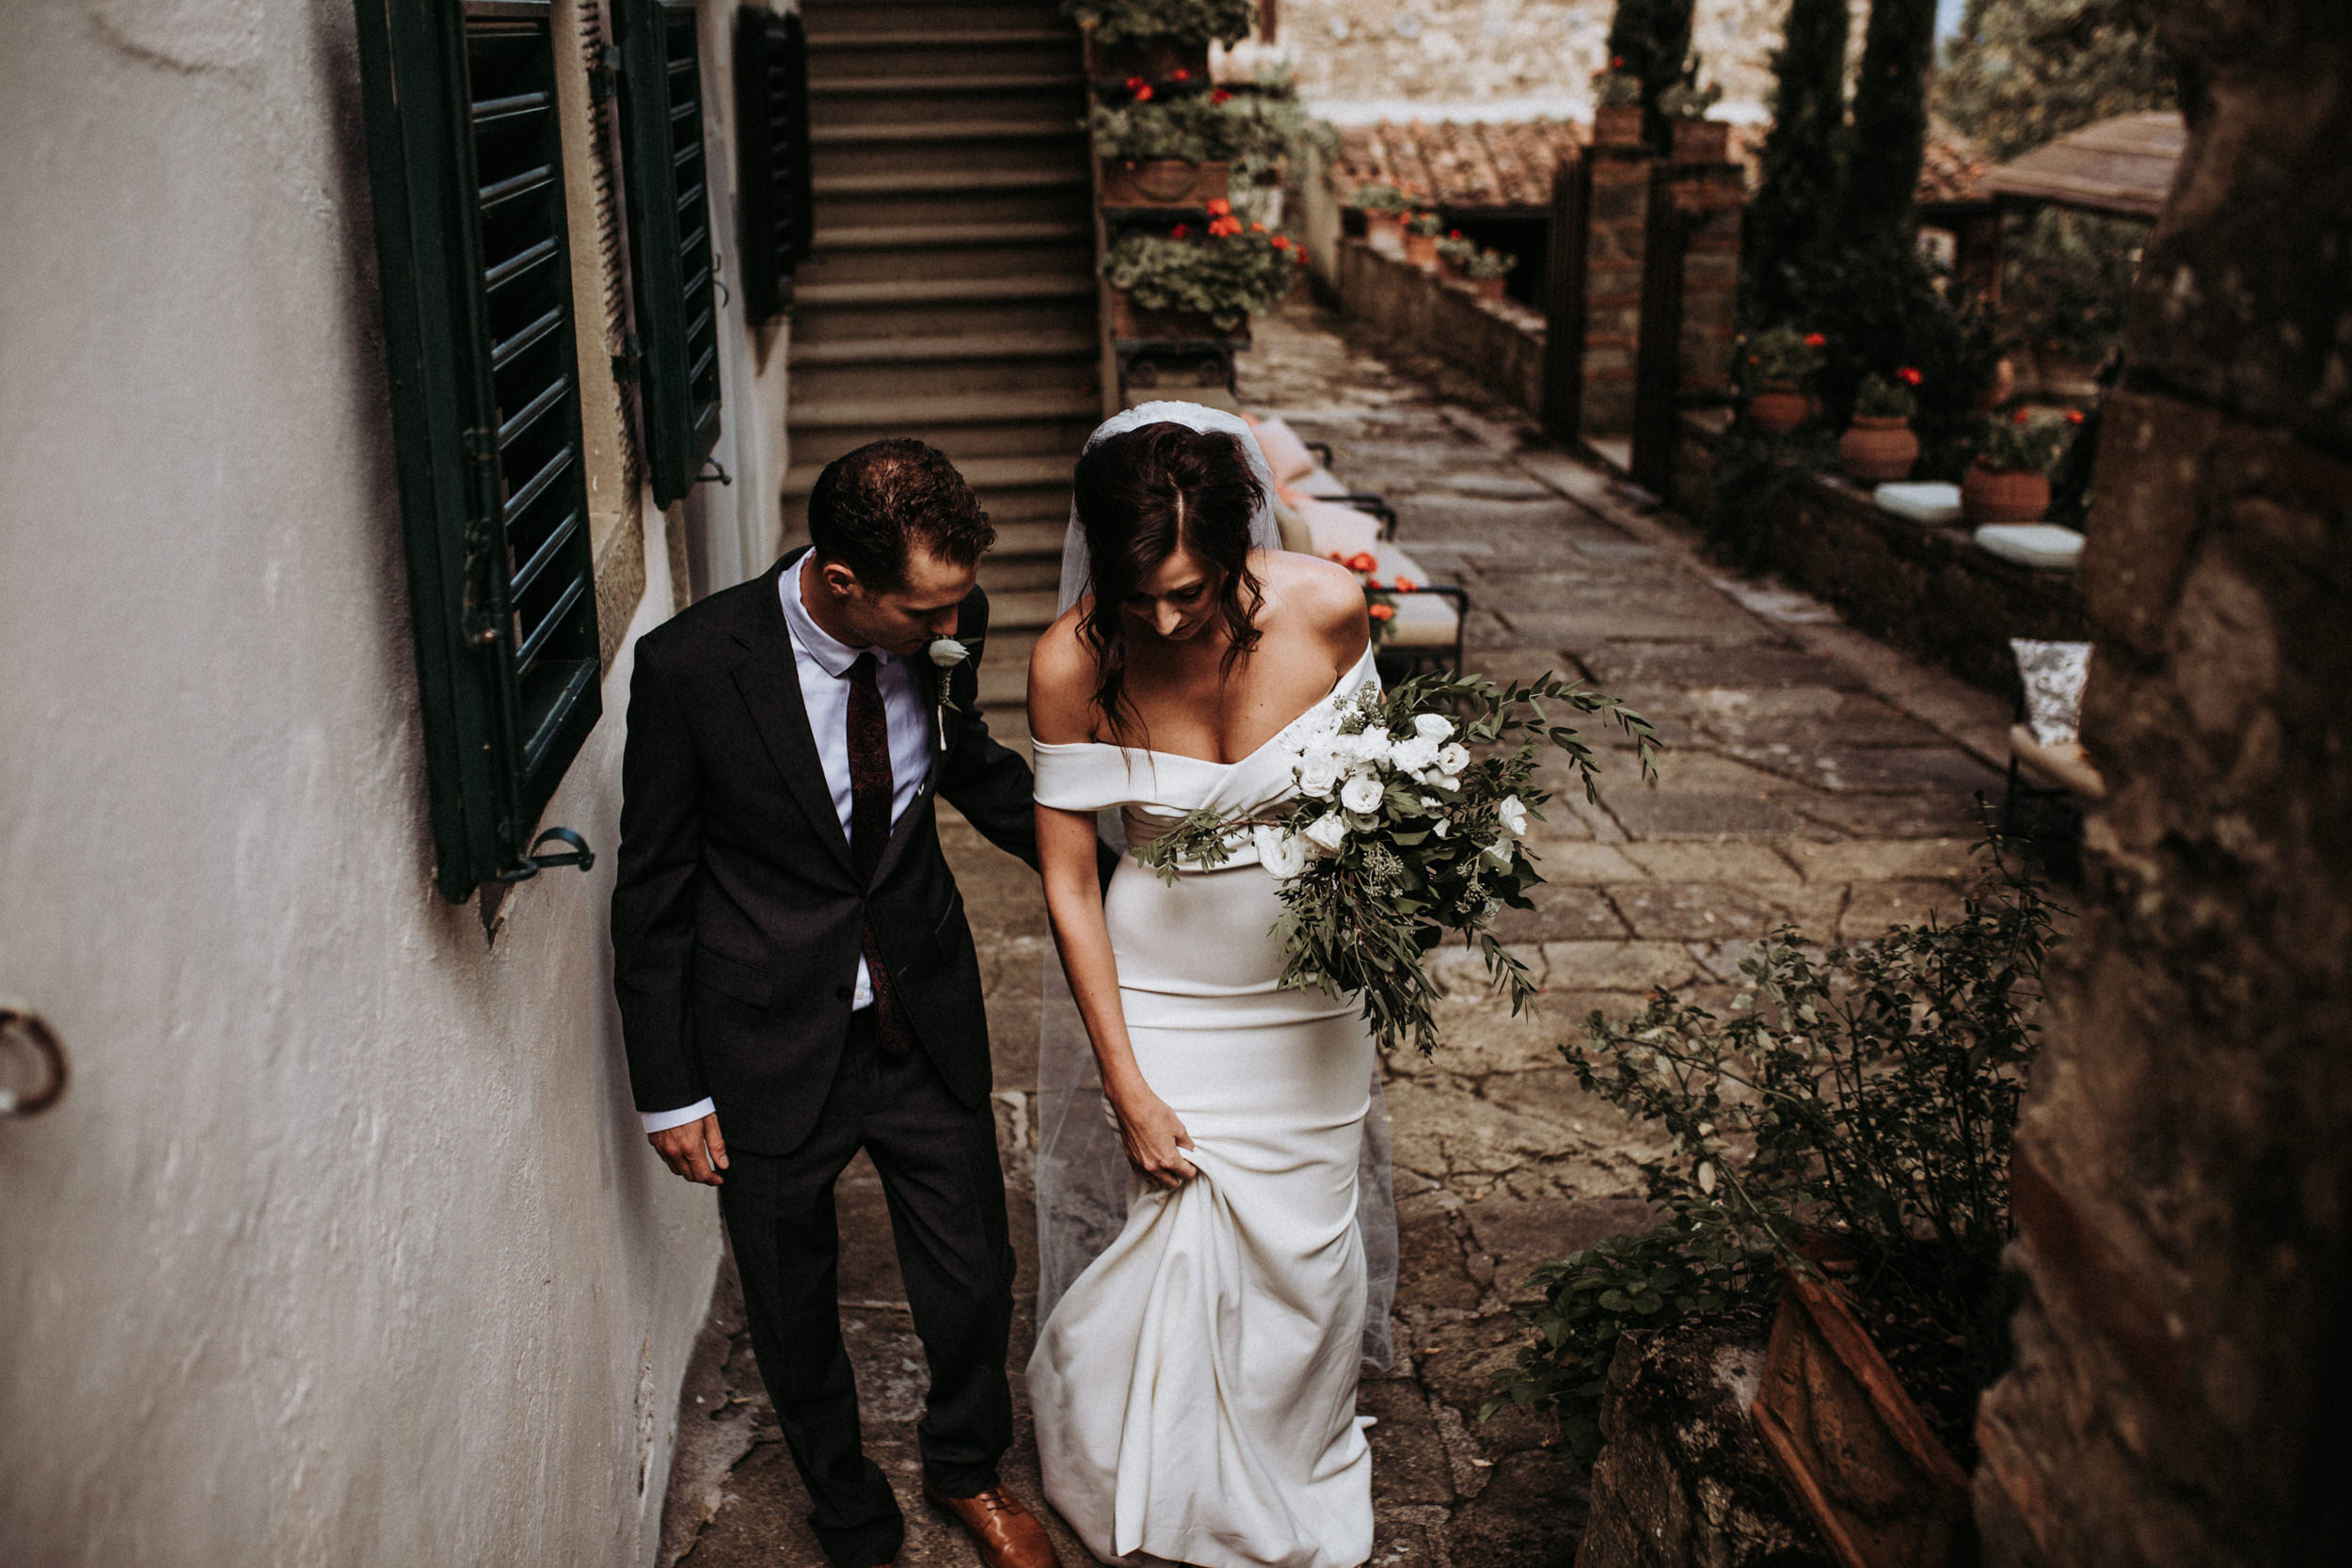 dm_photography_KW_Tuscanyweddingday_201